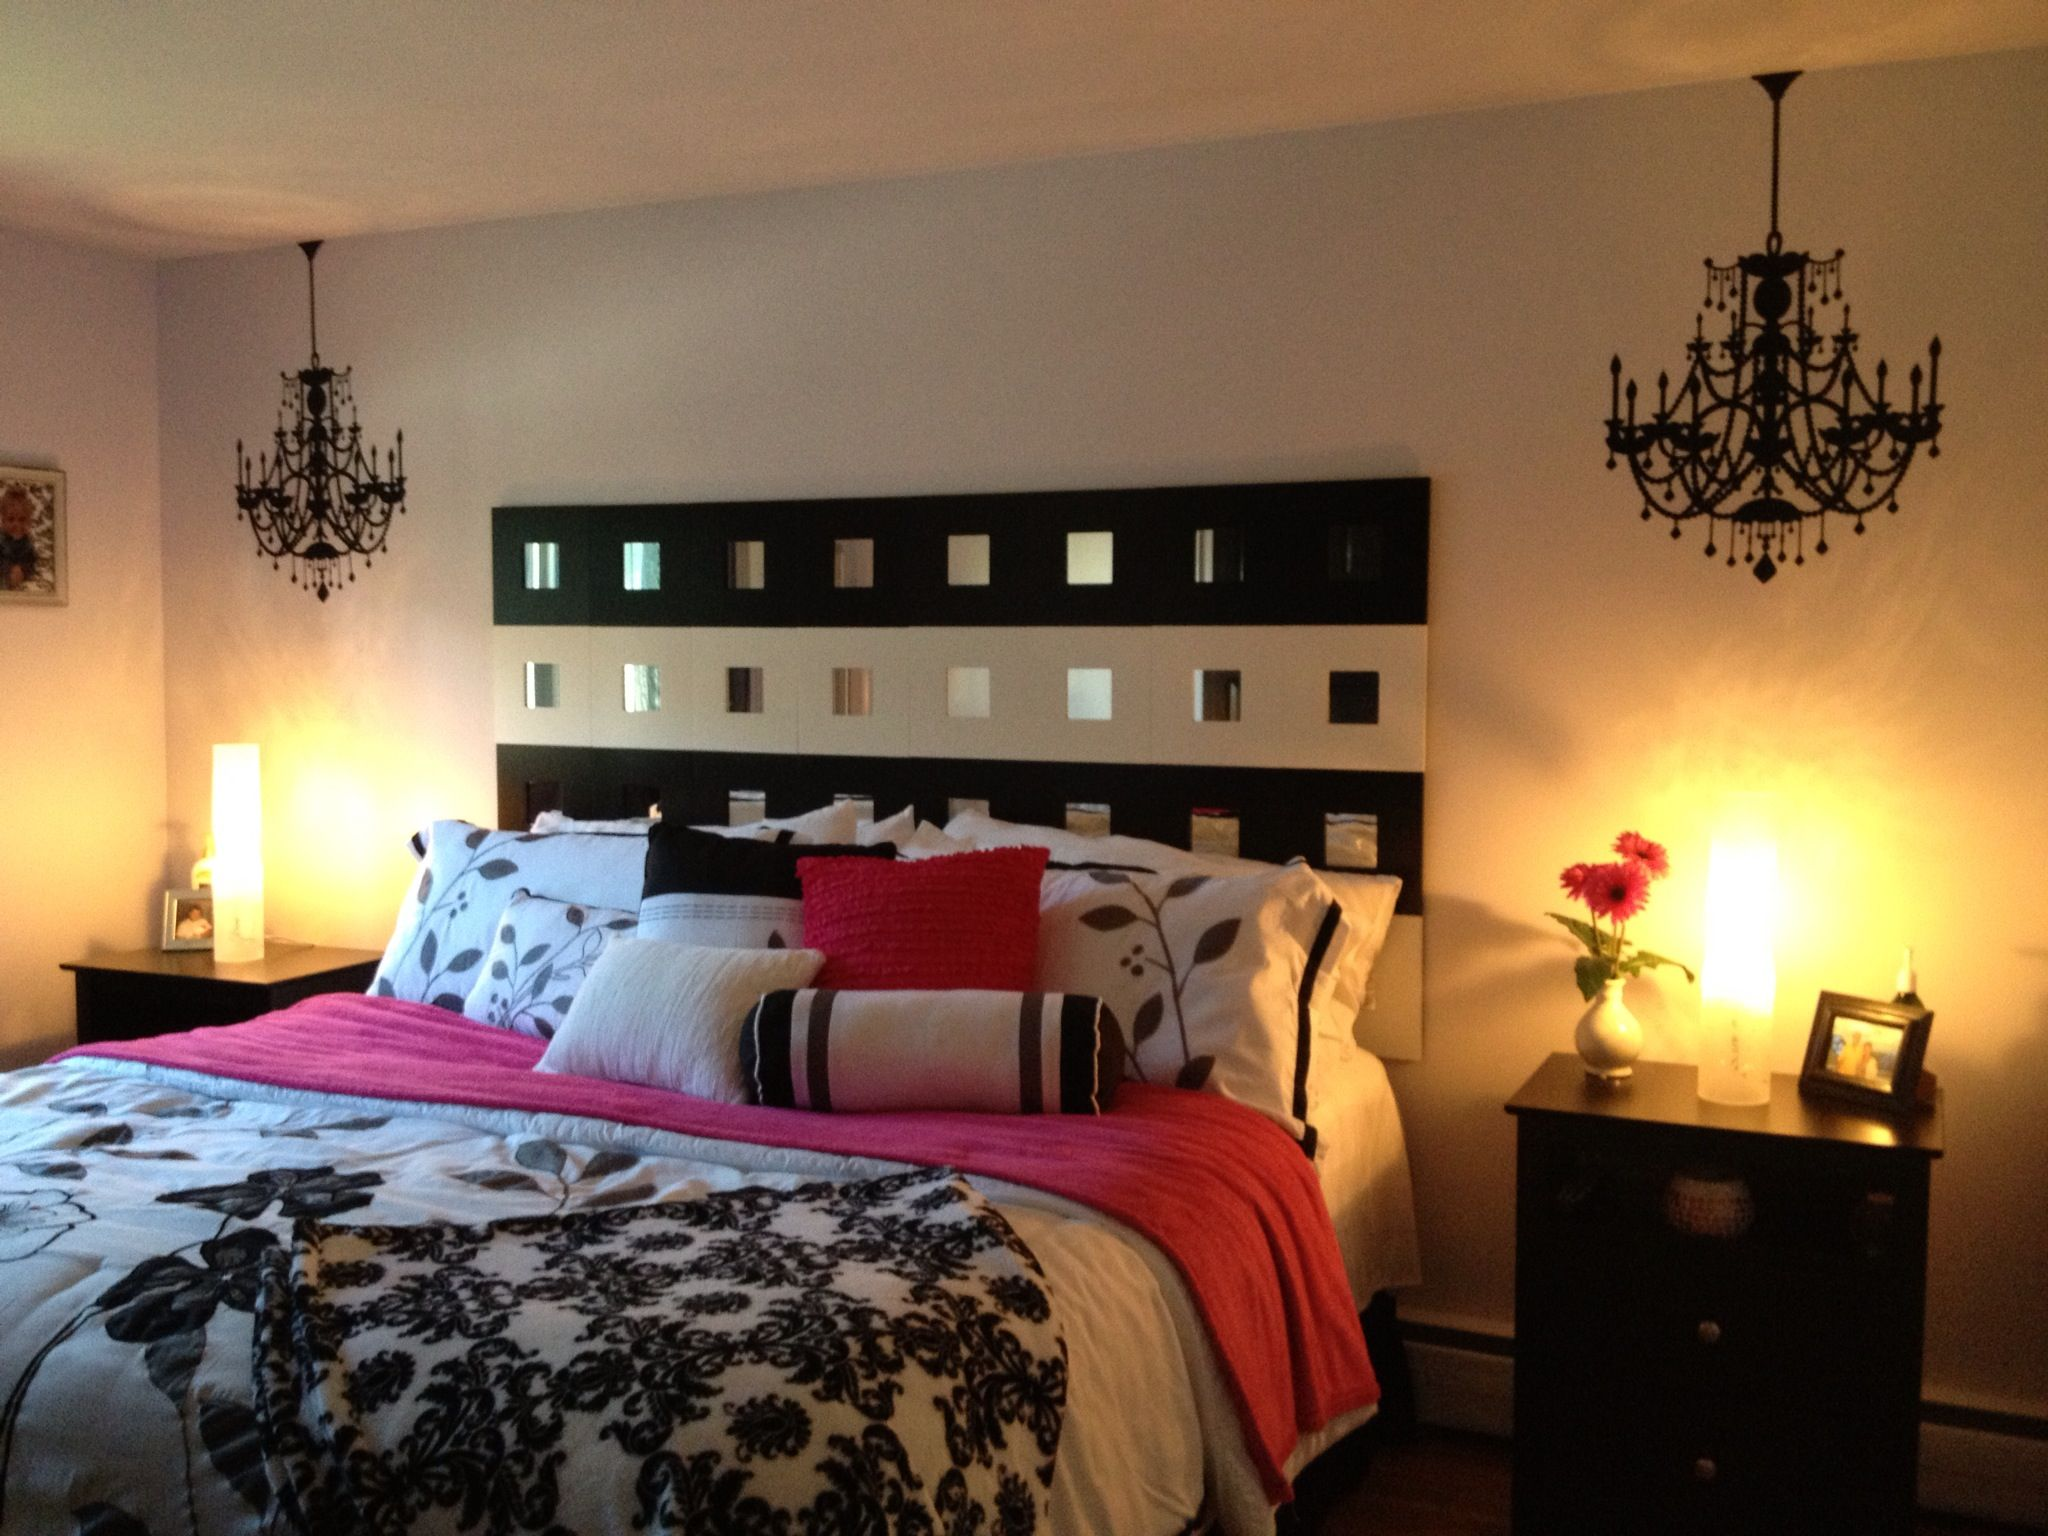 Black white hot pink bedroom for the home pinterest hot pink bedrooms pink bedrooms - Hot pink room ideas ...